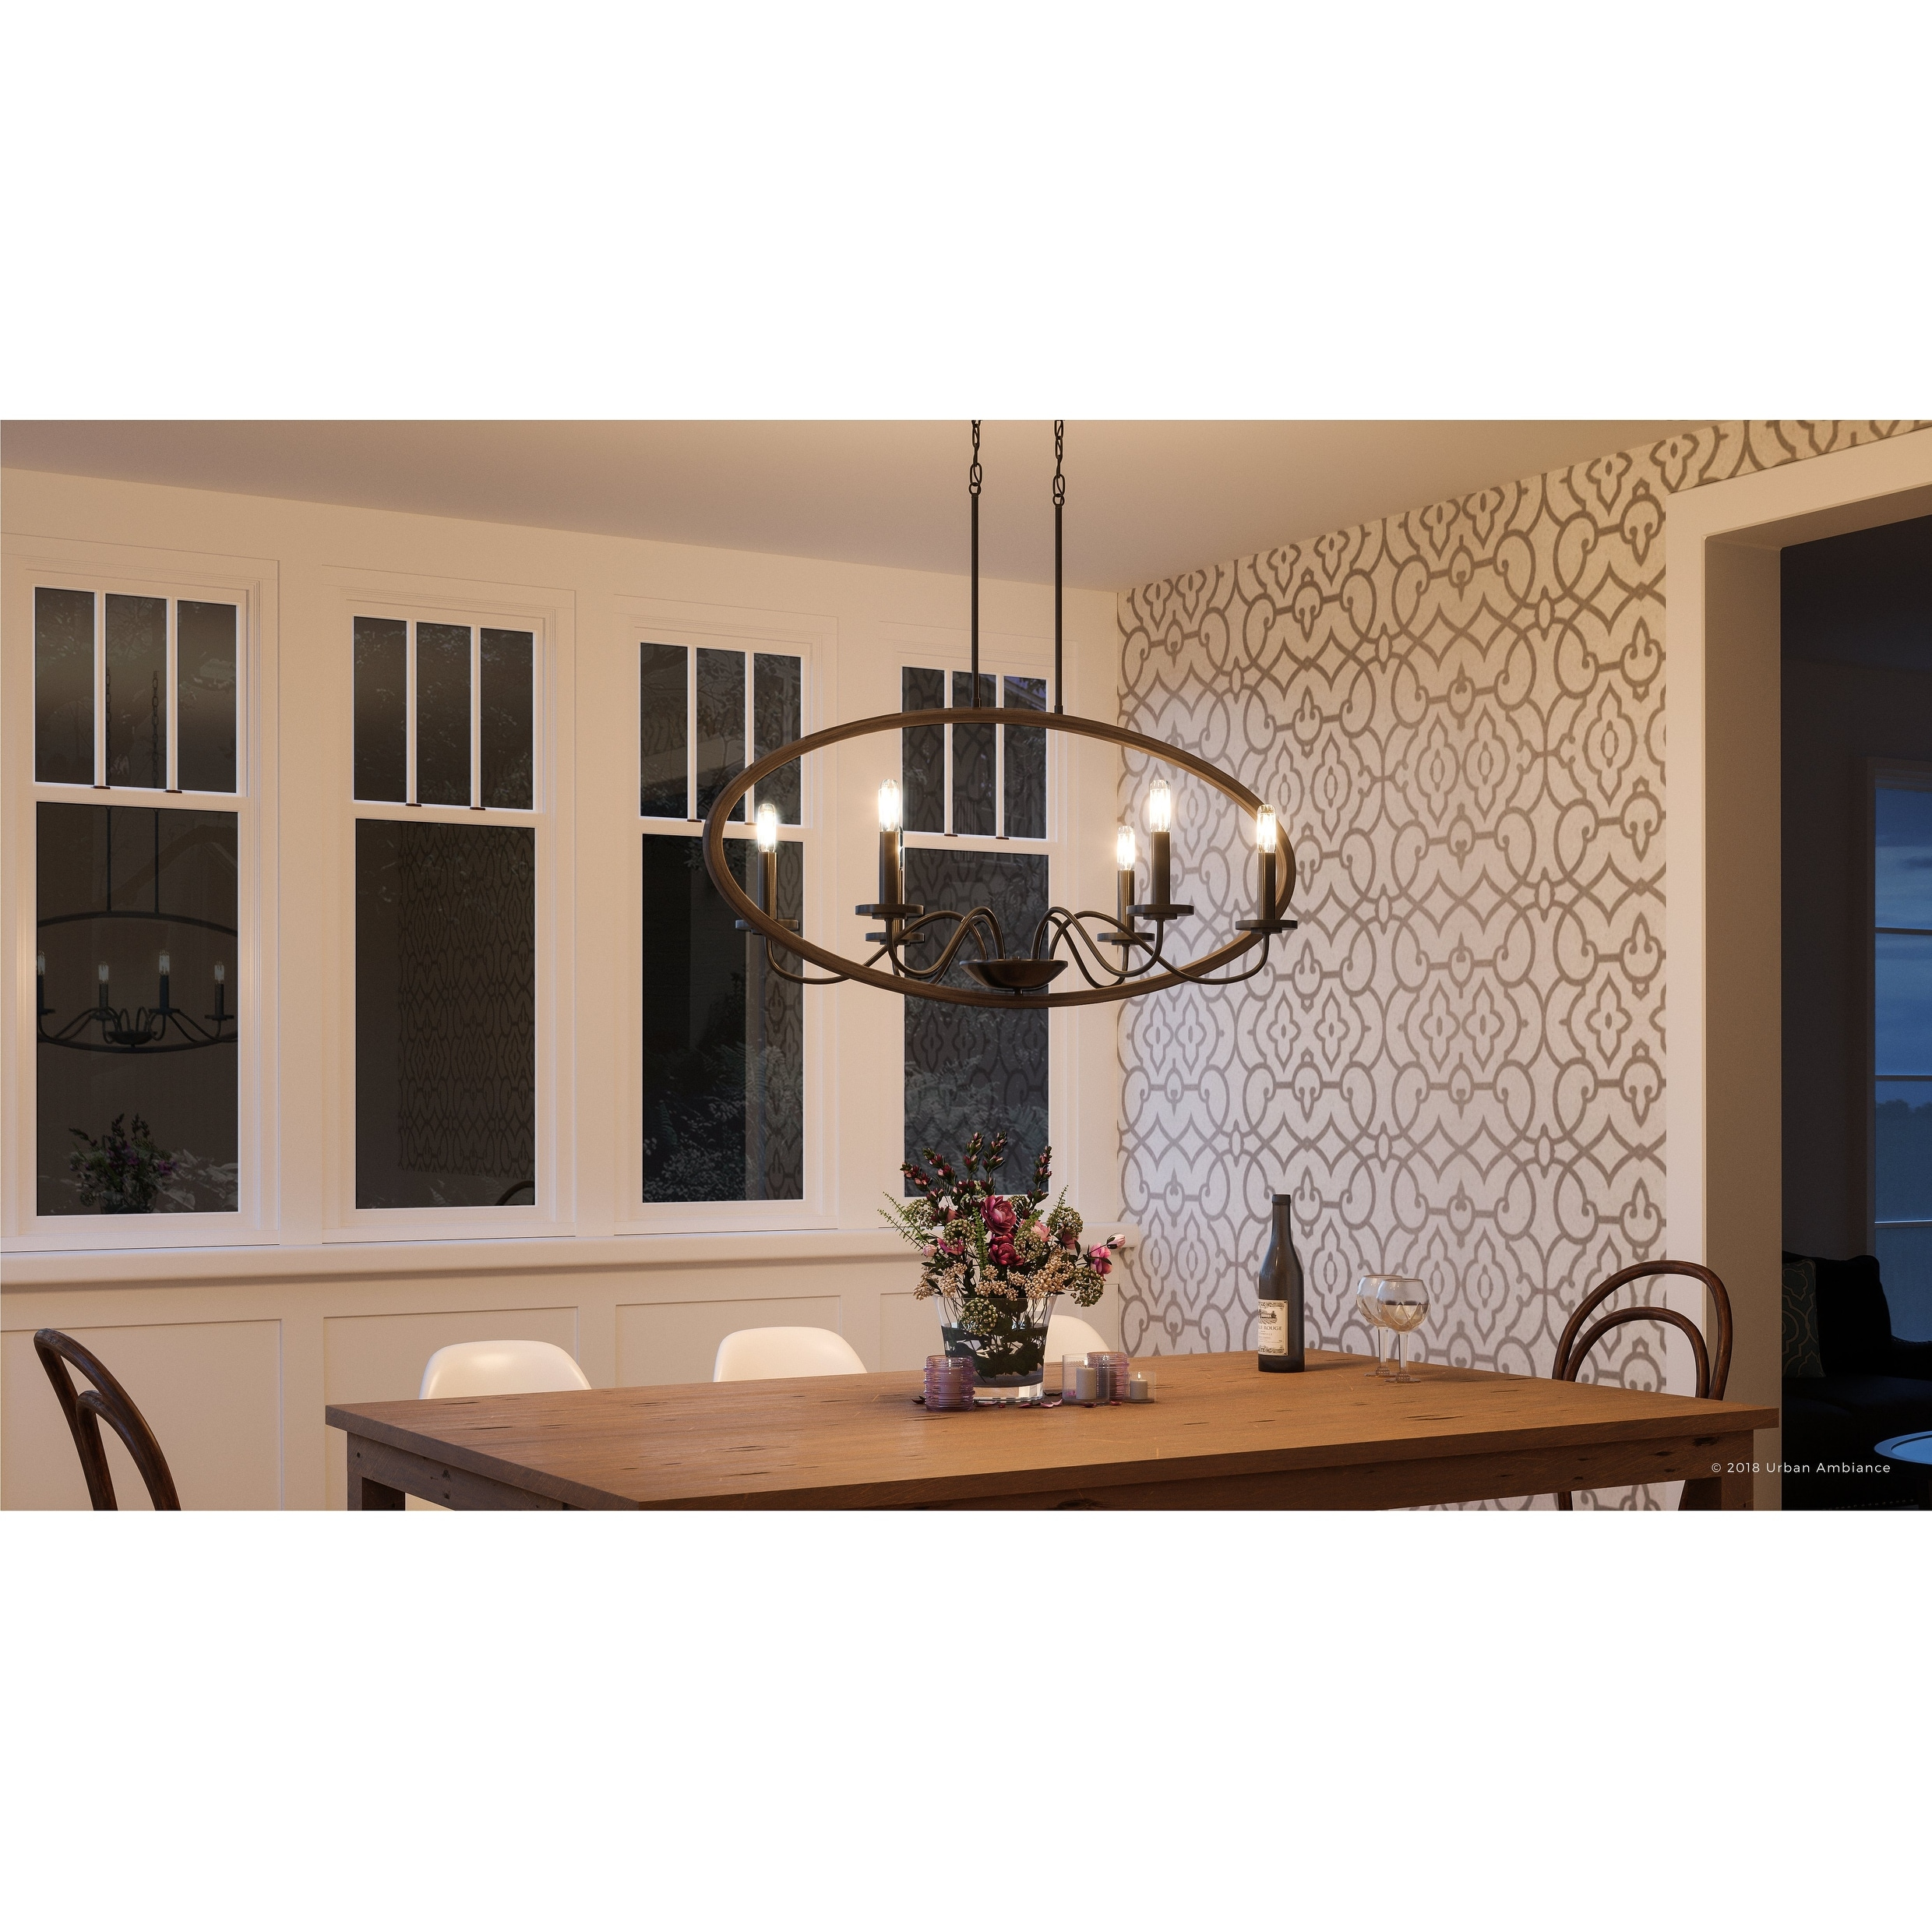 Shop luxury modern farmhouse chandelier 15 75h x 36w with english country style olde bronze finish by urban ambiance free shipping today